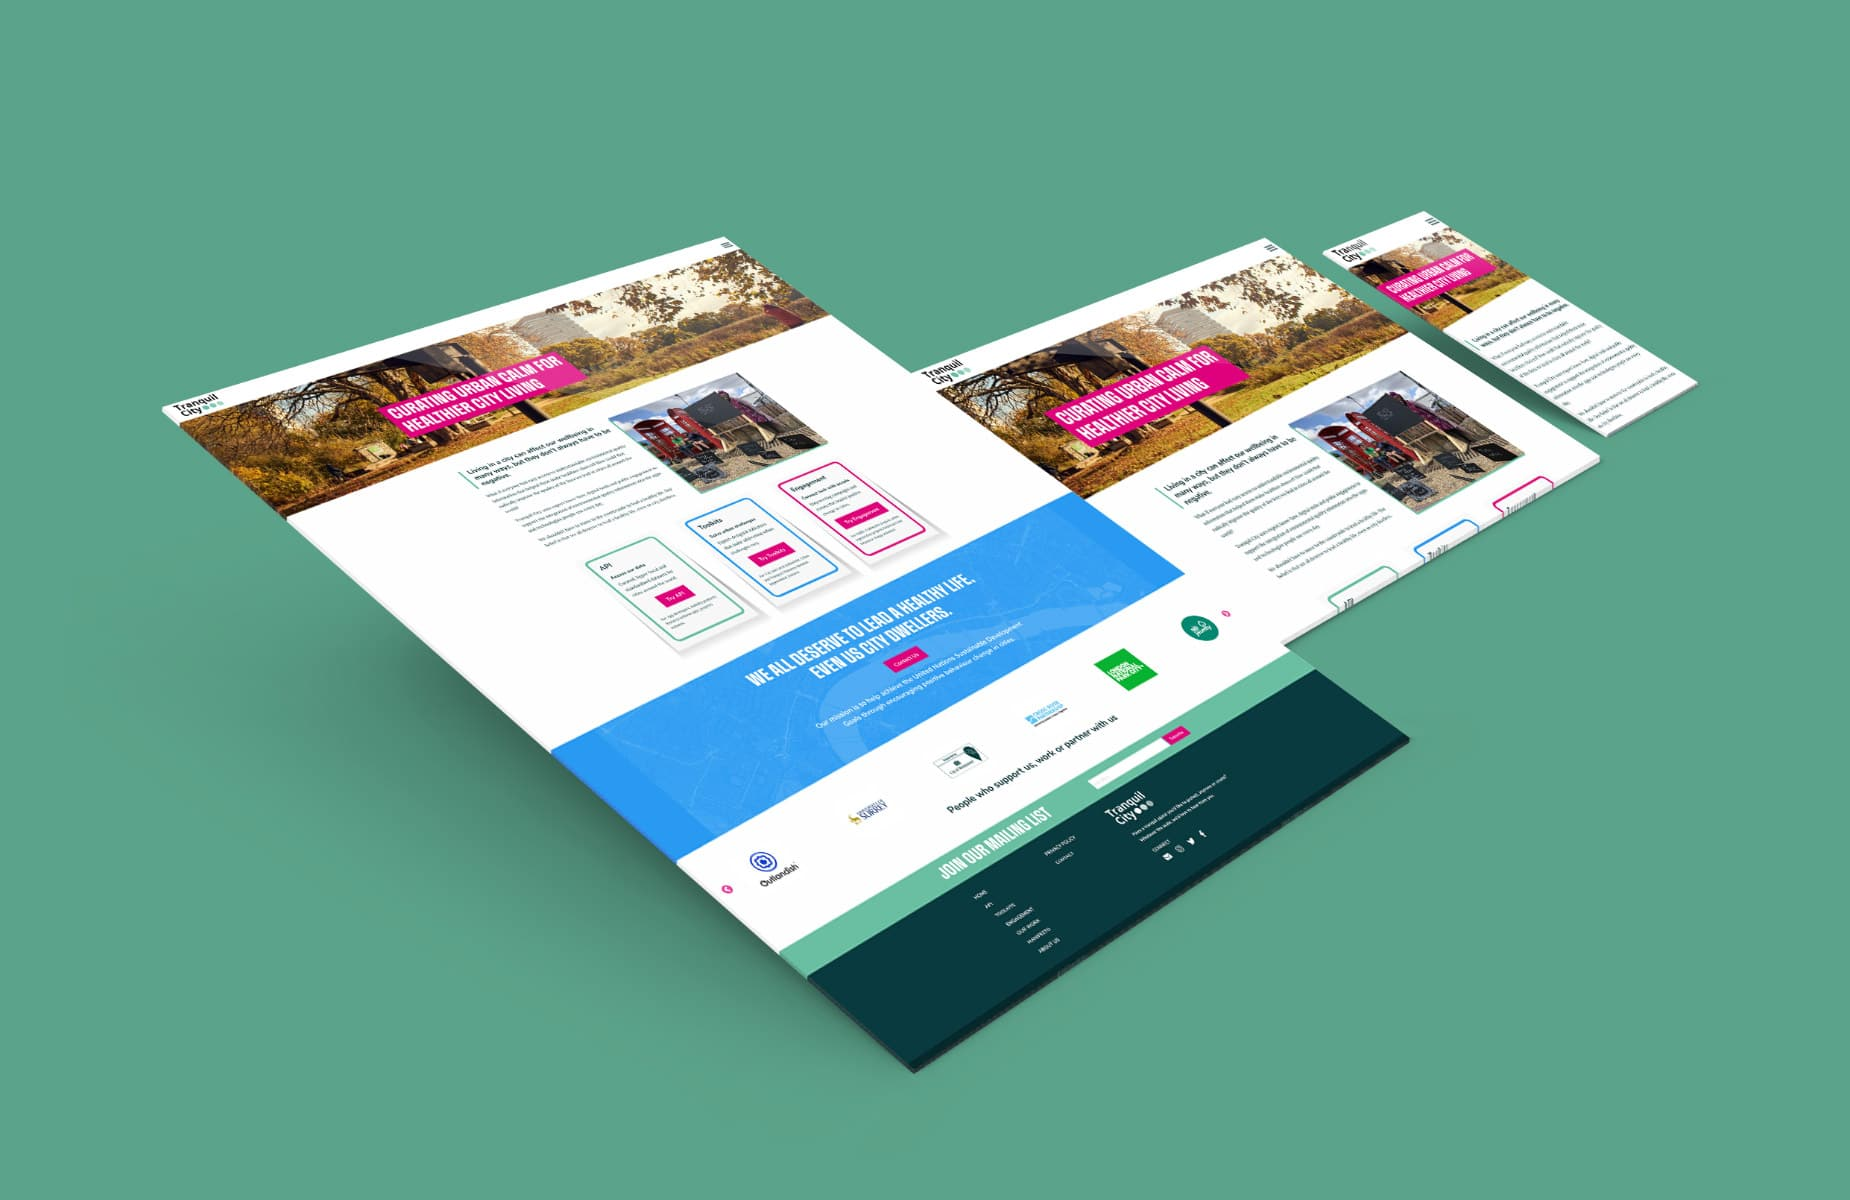 WP Creative, Design and Marketing Agency Suffolk, Web Design, Client Website Layout Example